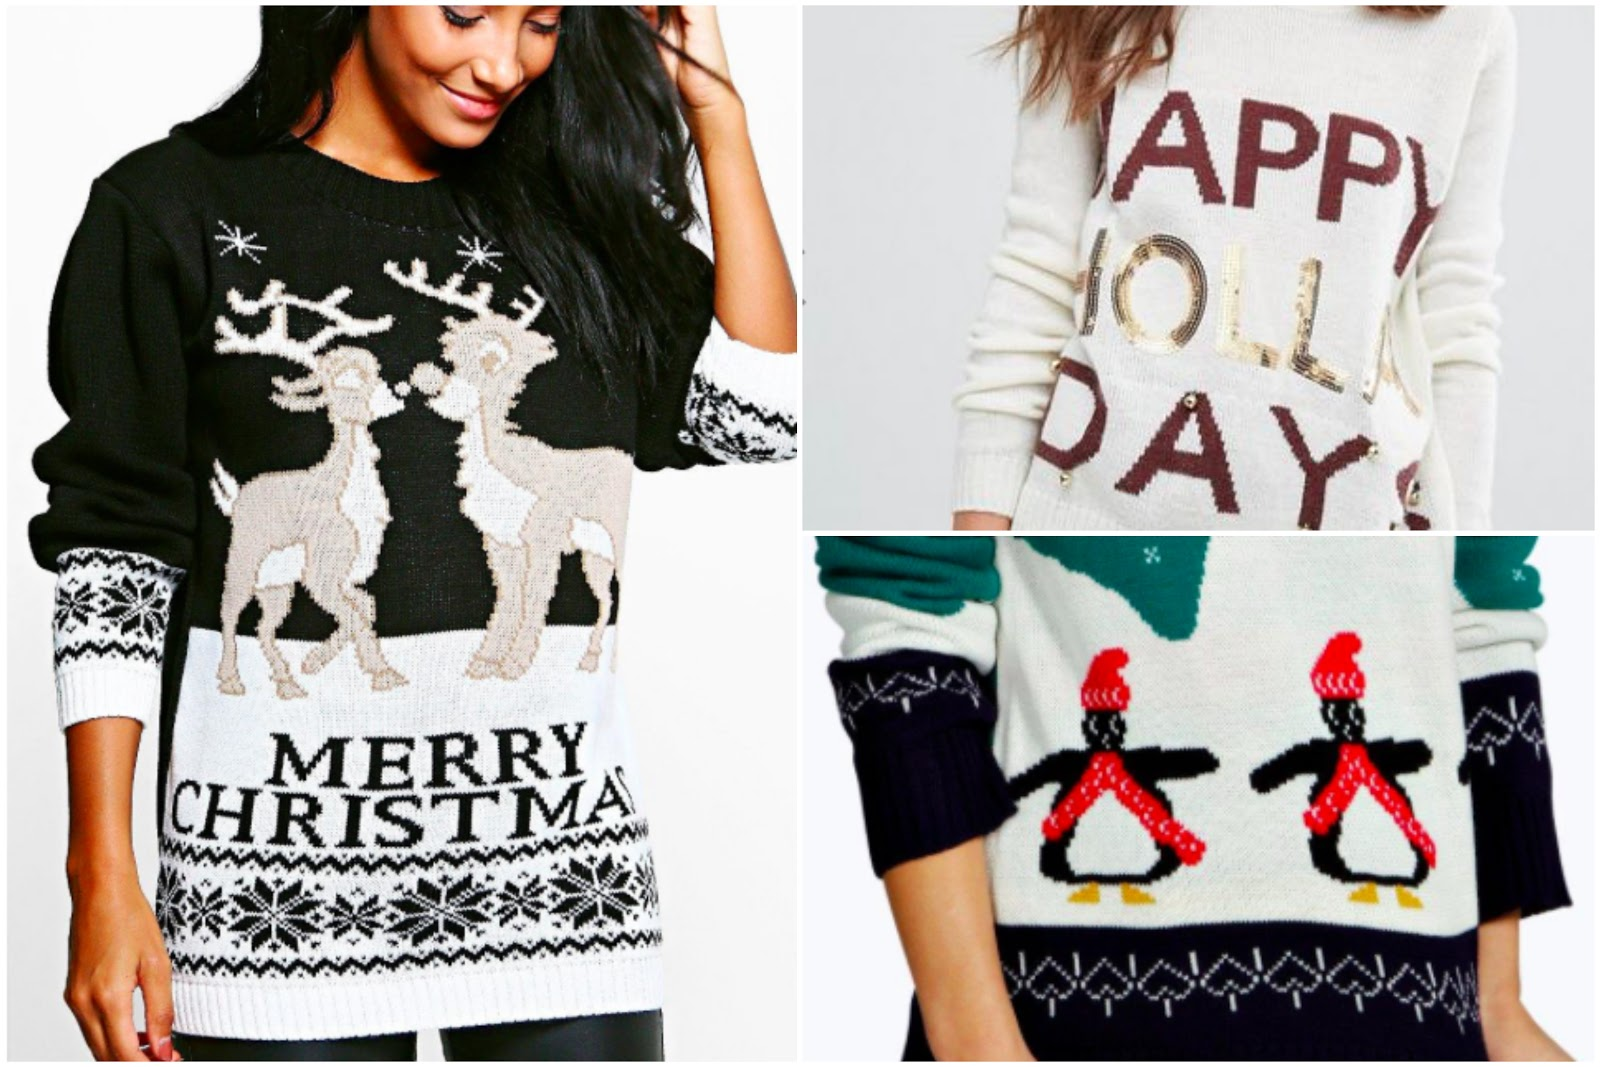 Christmas Jumpers from Asos, Primark and Boohoo